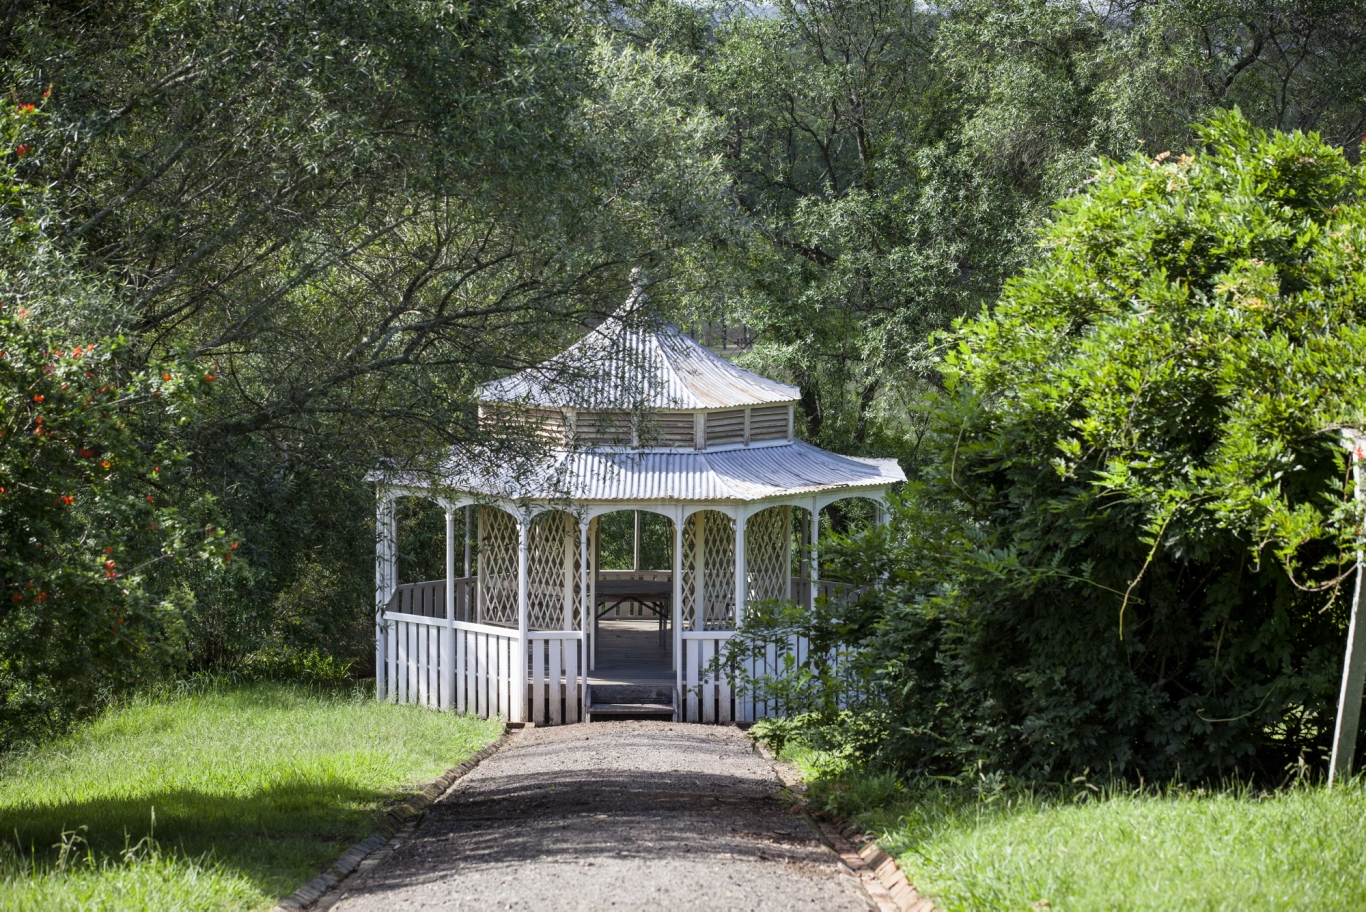 White gazebo in rural setting.